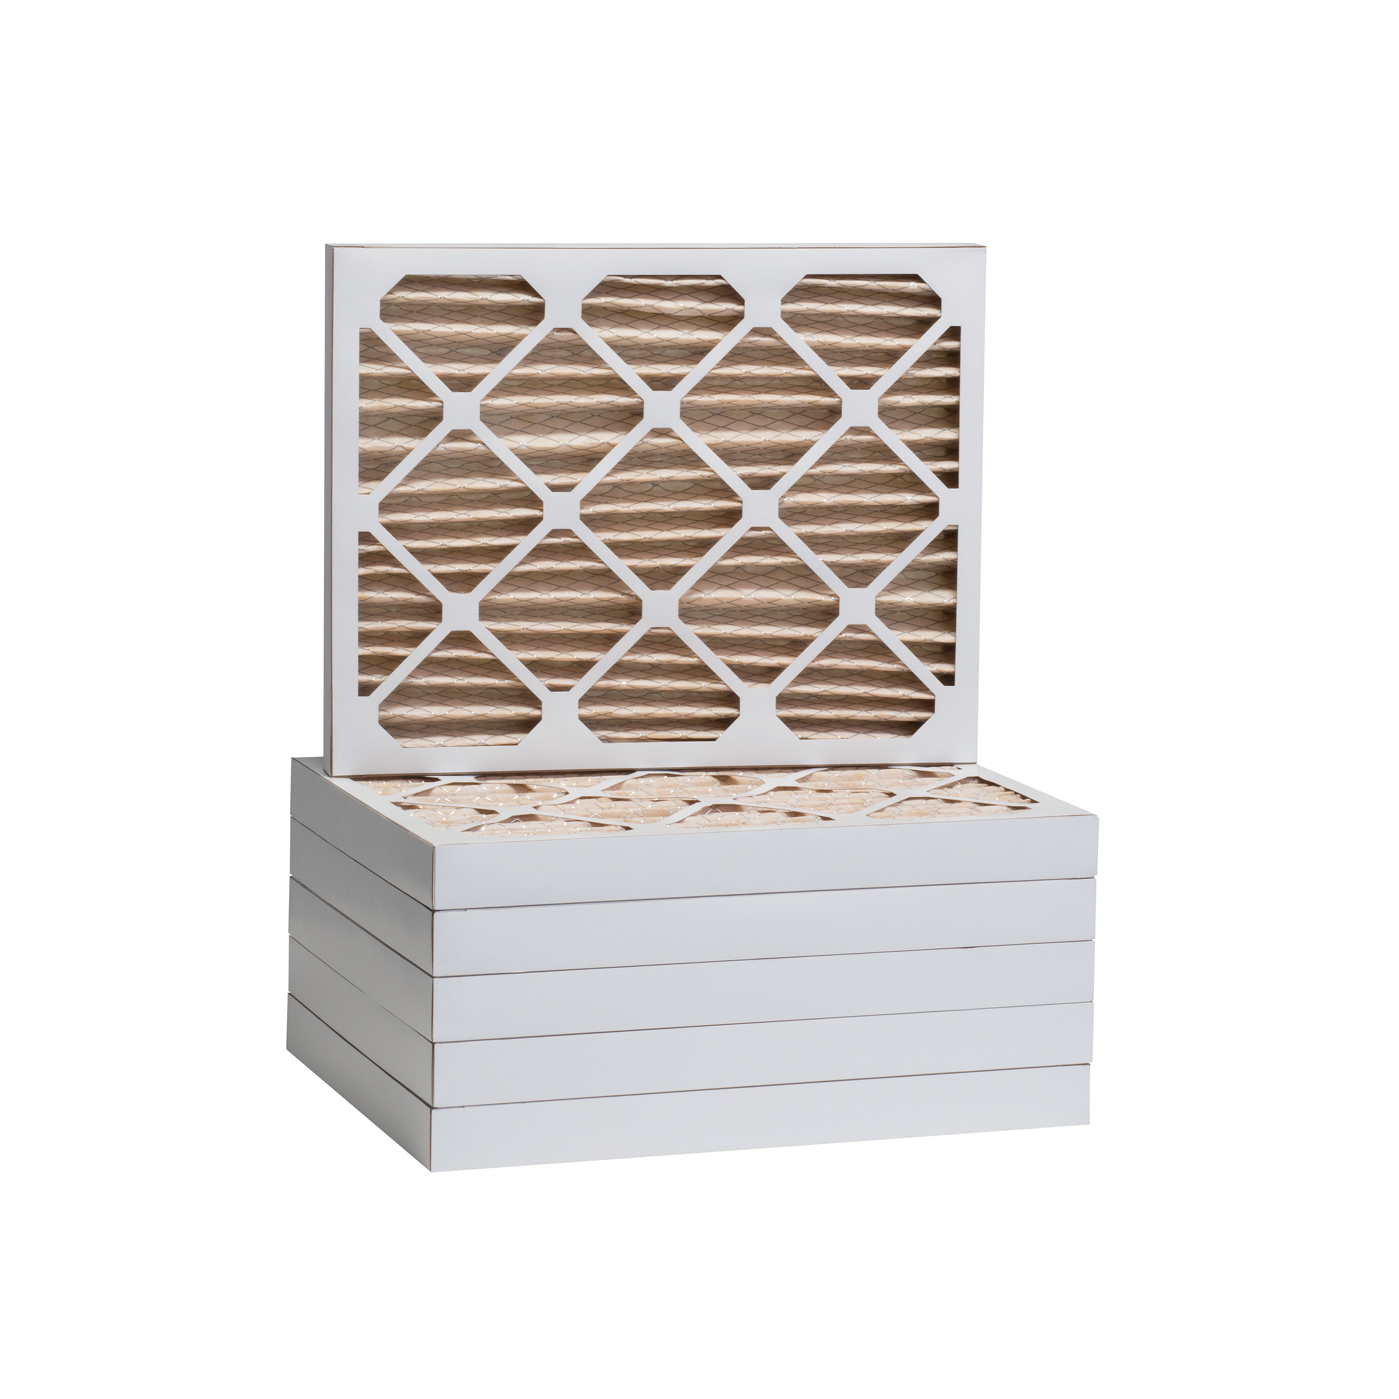 Tier1 1500 Air Filter - 20 x 22-1/4 x 2 (6-Pack) TIER1_P15S_622022D_6_PACK